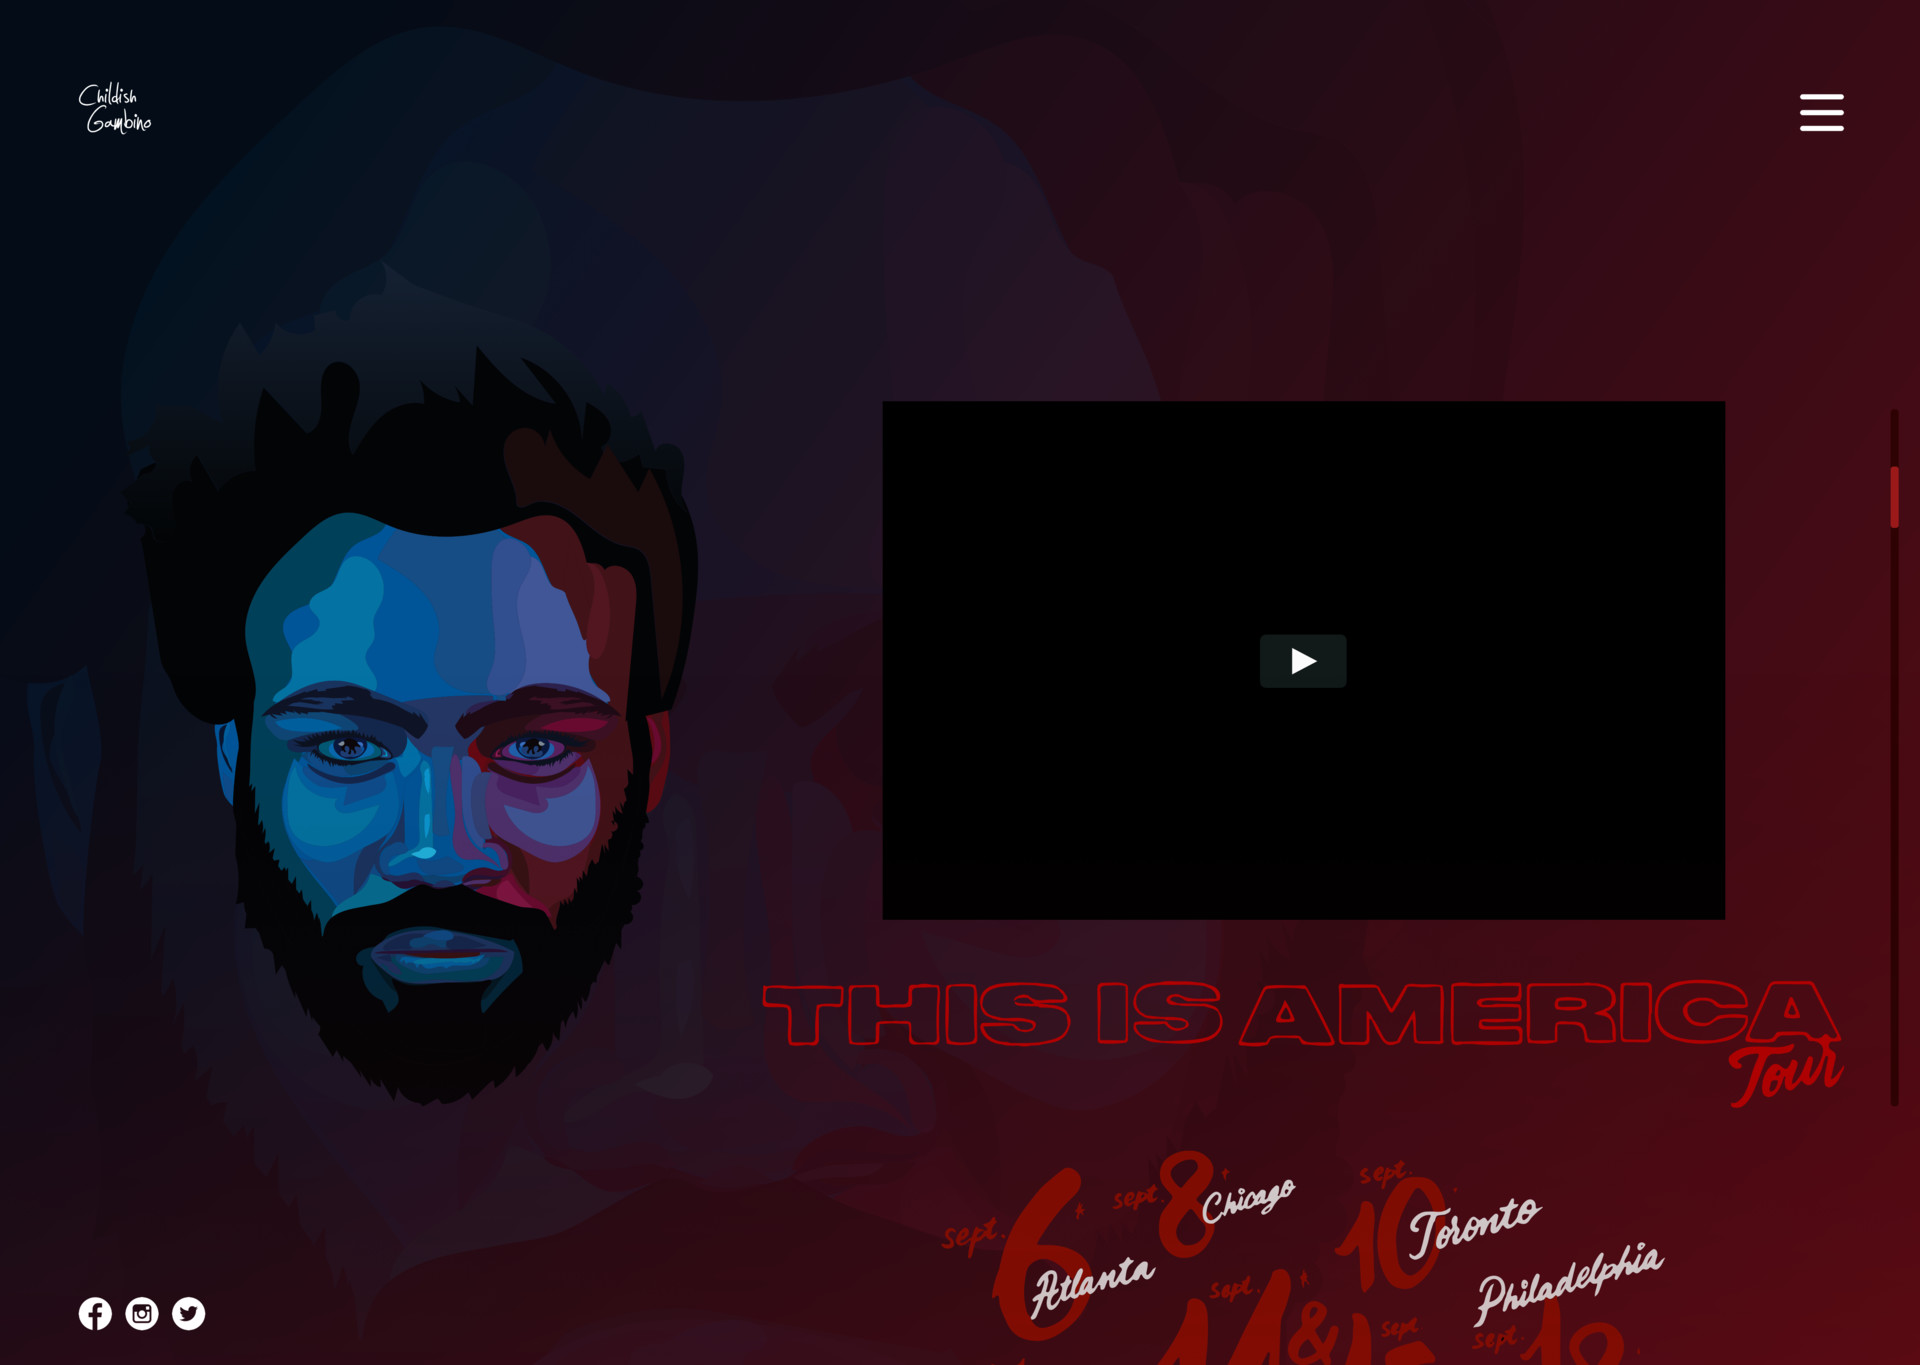 Jerry ubah childish gambino landing page